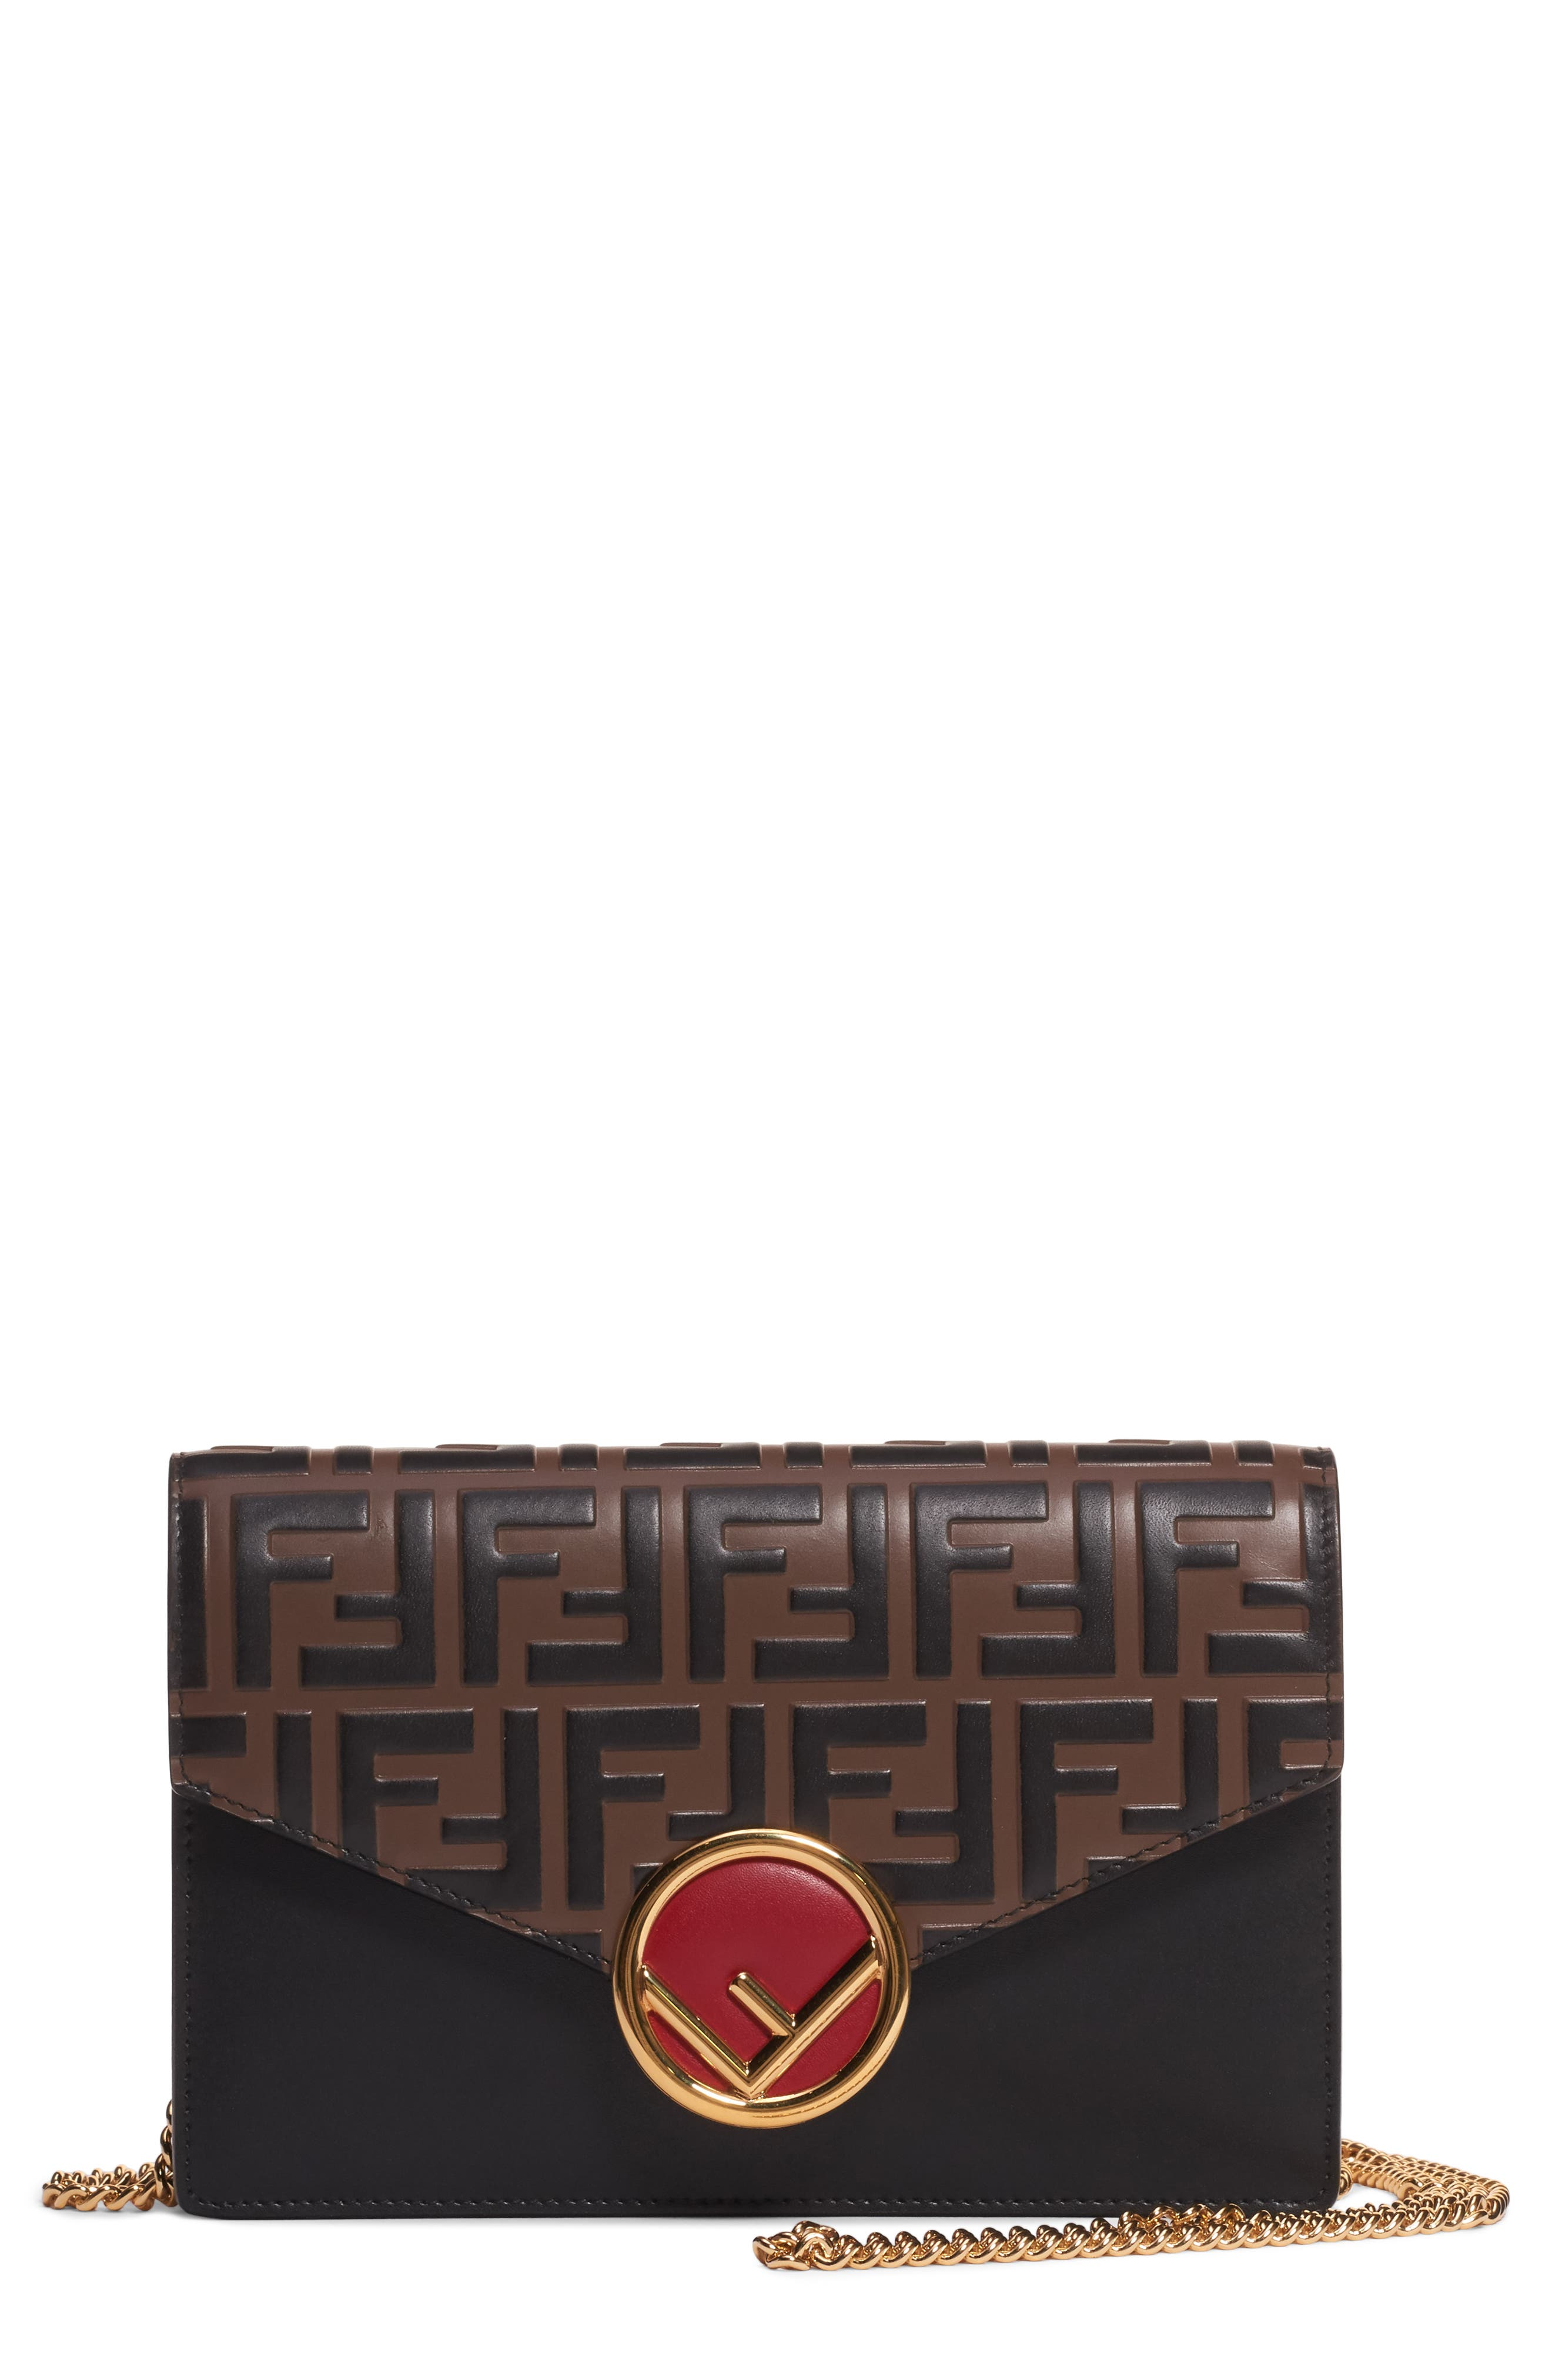 FENDI Logo Calfskin Leather Wallet on a Chain, Main, color, 201